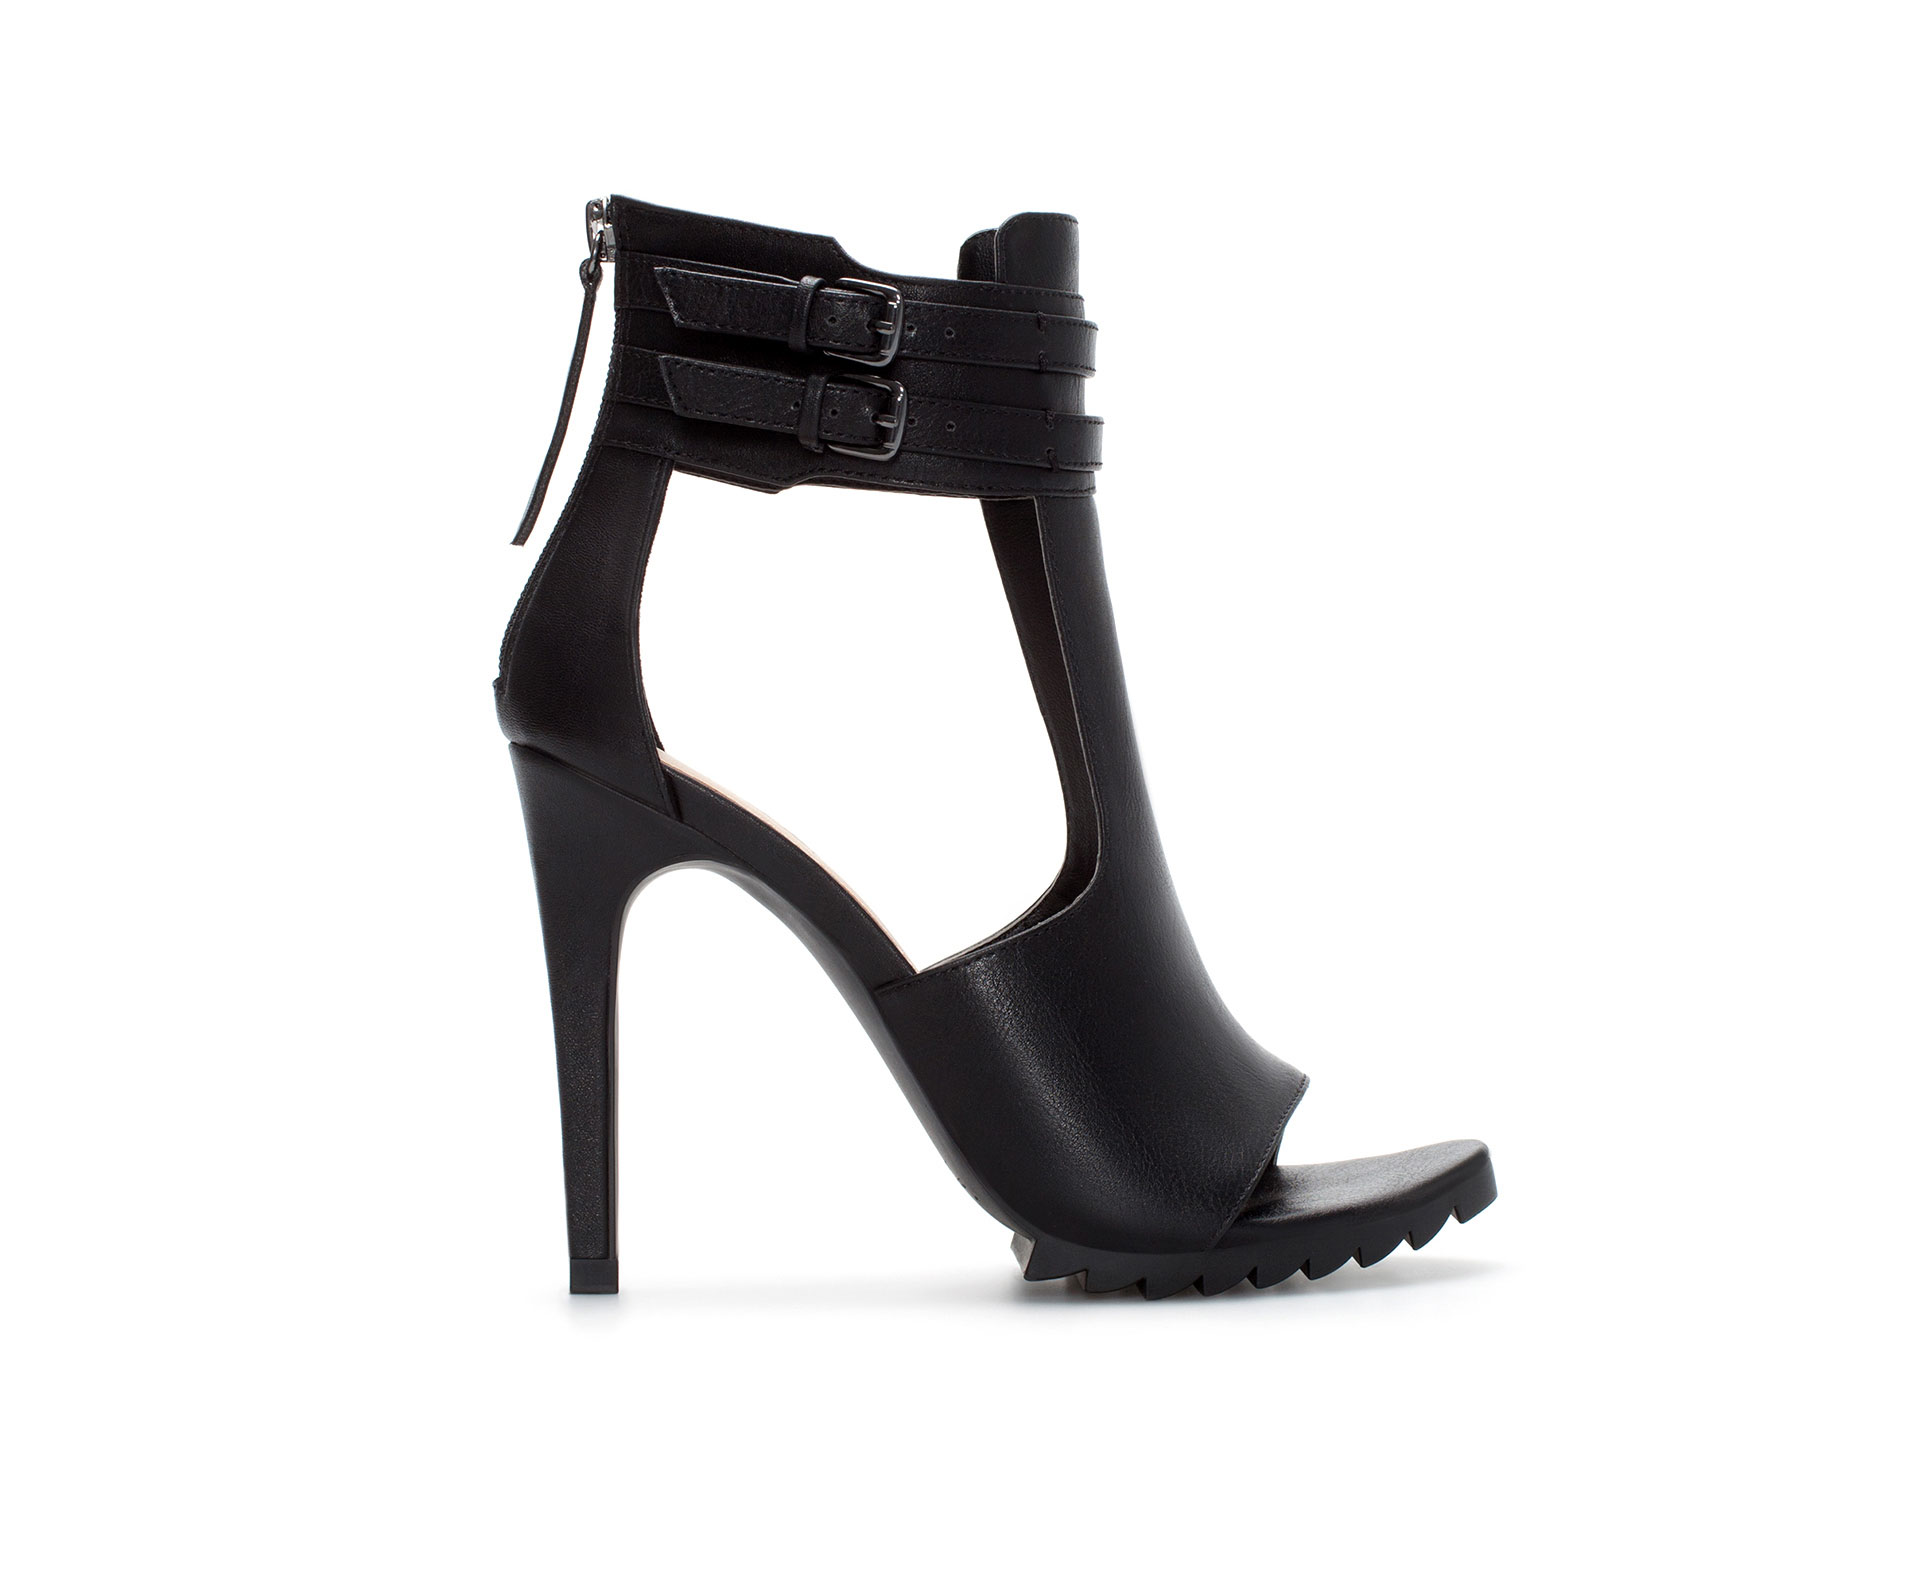 Black High Heel Sandals With Ankle Strap - Is Heel